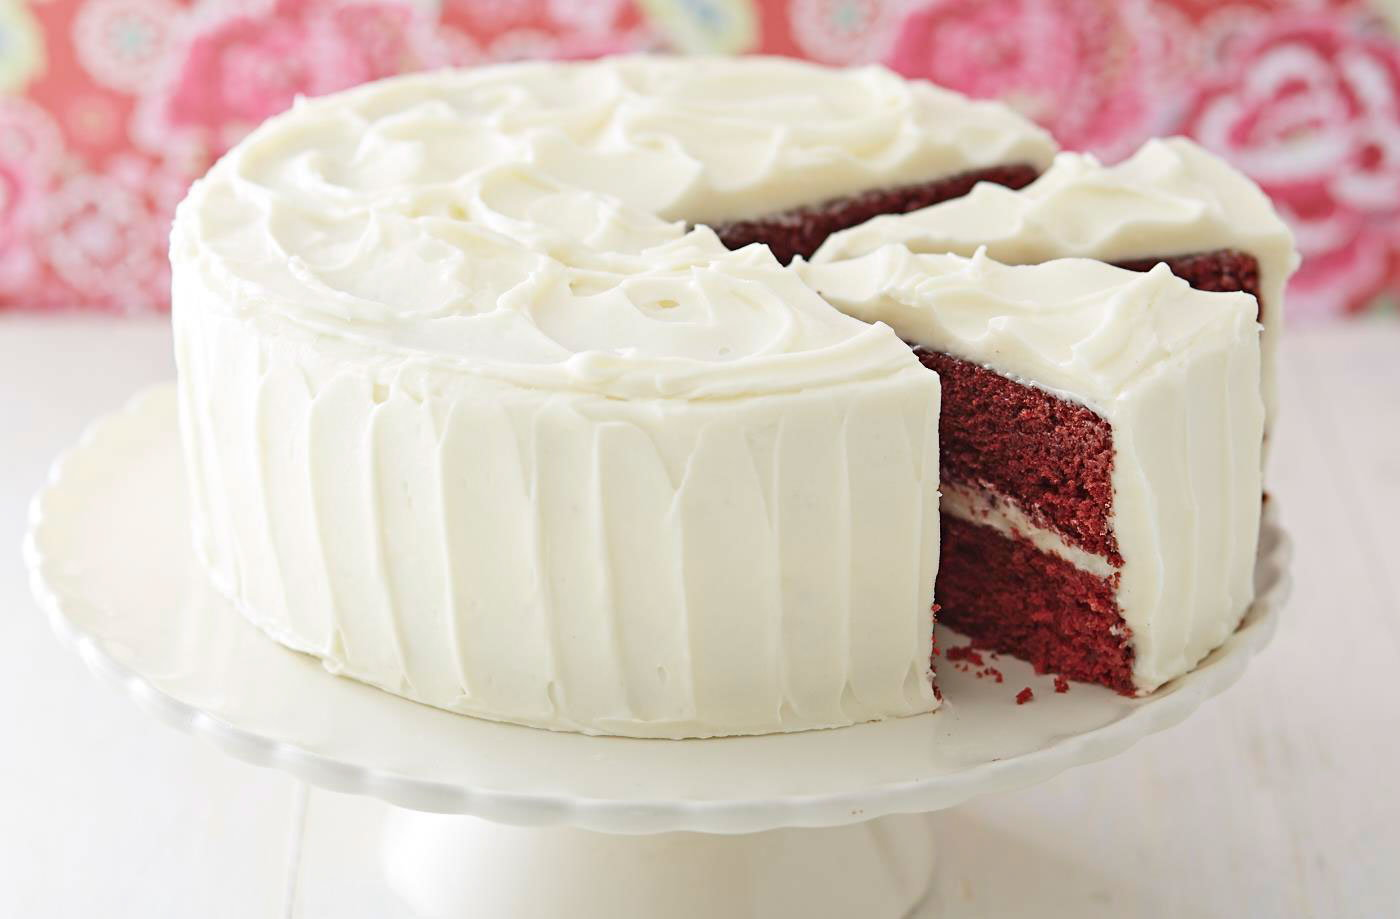 red velvet wedding cake recipe uk velvet cake recipe cake recipes tesco real food 19164